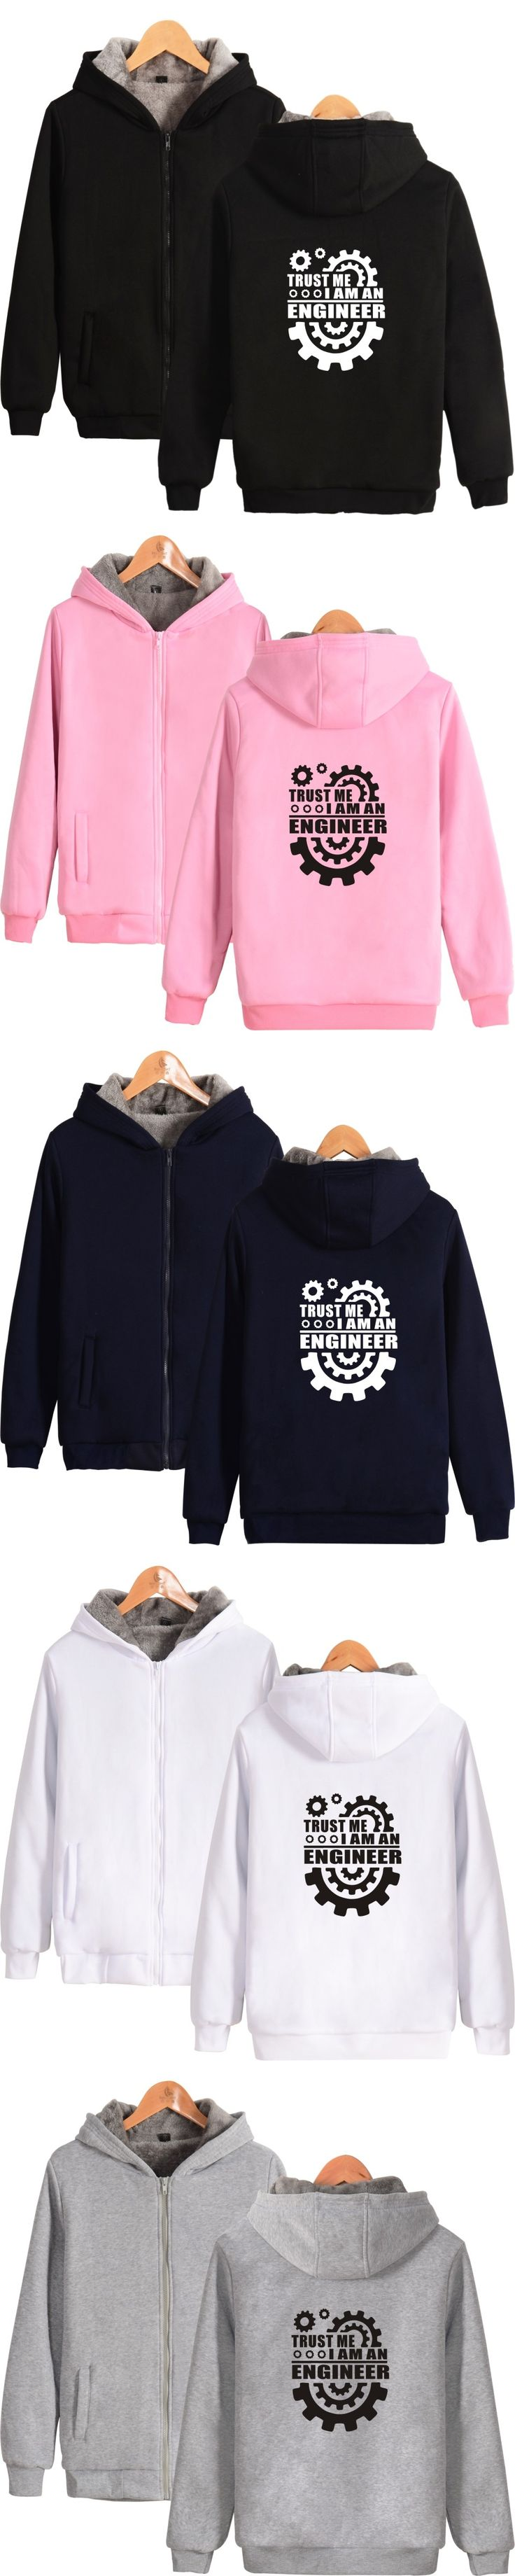 Trust Me I am An Engineer Hoodie With Zipper Men Thick Warm Winter Hooded Sweatshirt Trust me, i'm an engineer Thick Hoodie